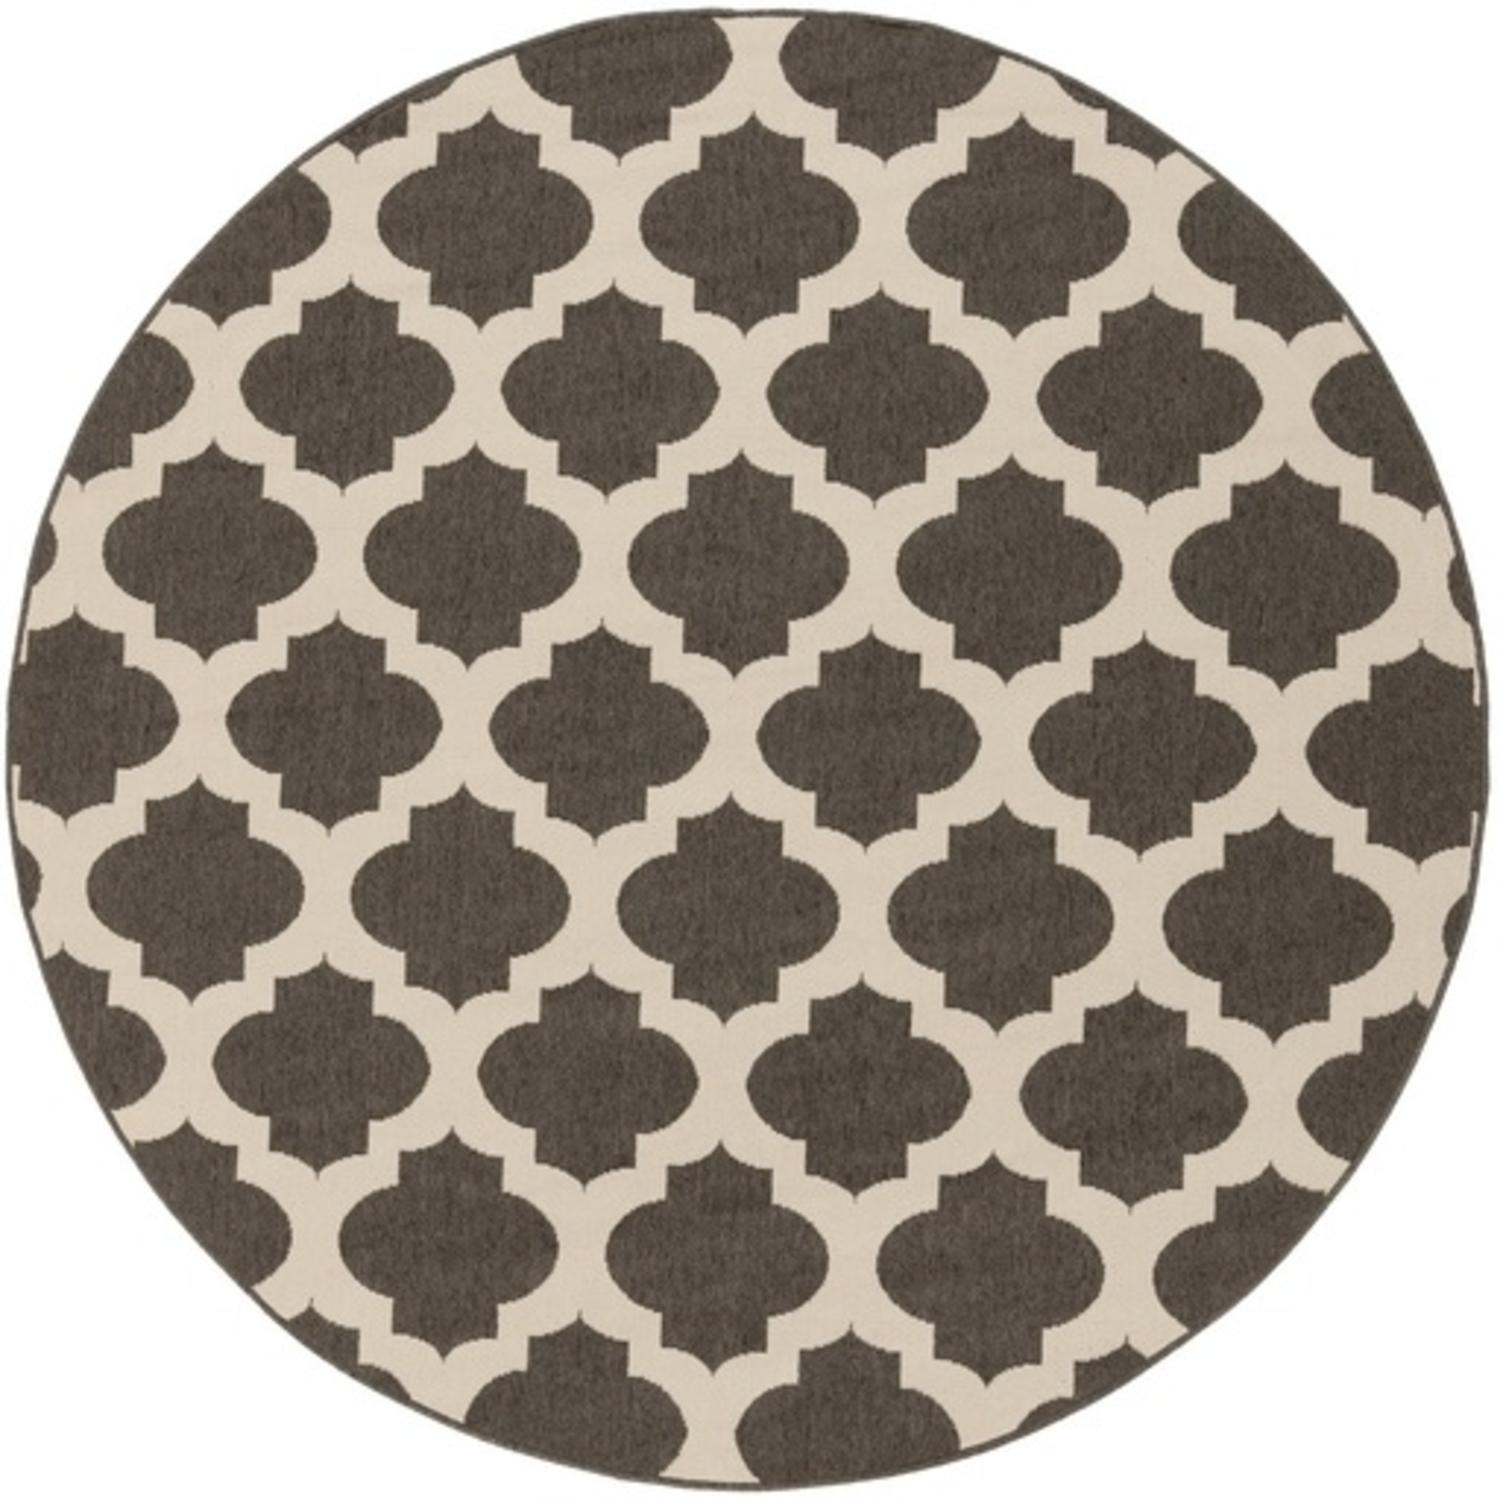 8.75' Diameter Moroccan Gateway Espresso Brown and Cream White Shed-Free Round Area Throw Rug